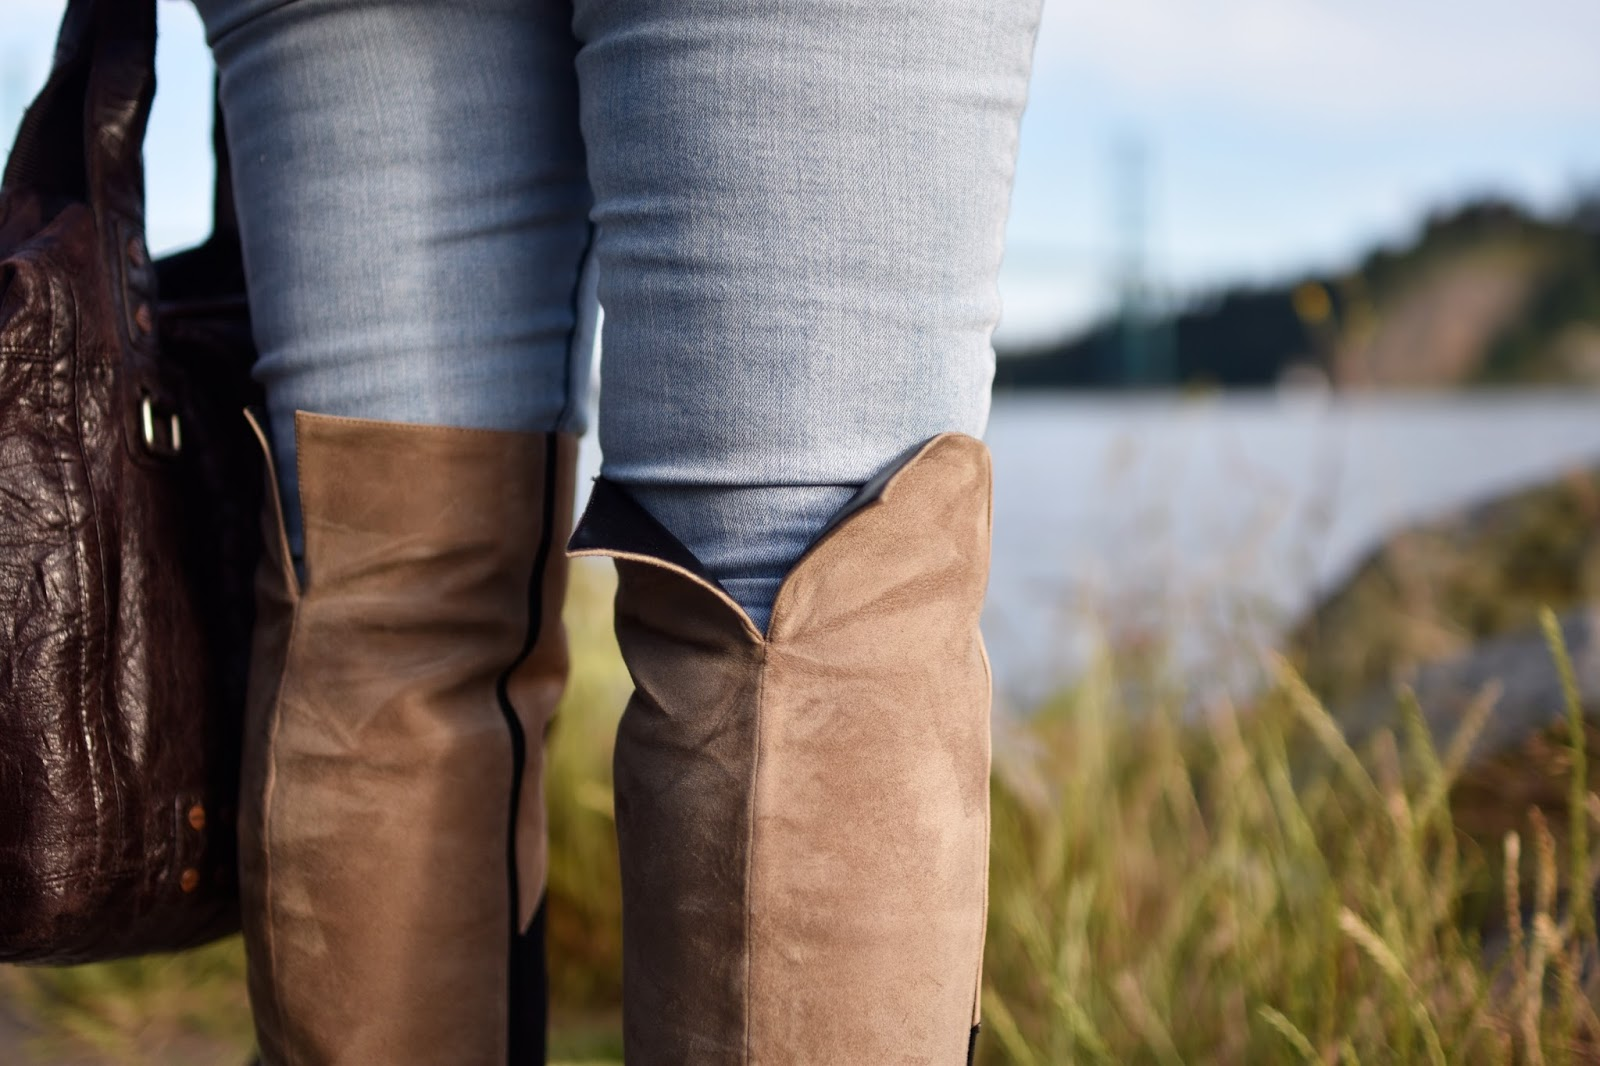 Monika Faulkner personal style inspiration - Aldo suede over-the-knee boots